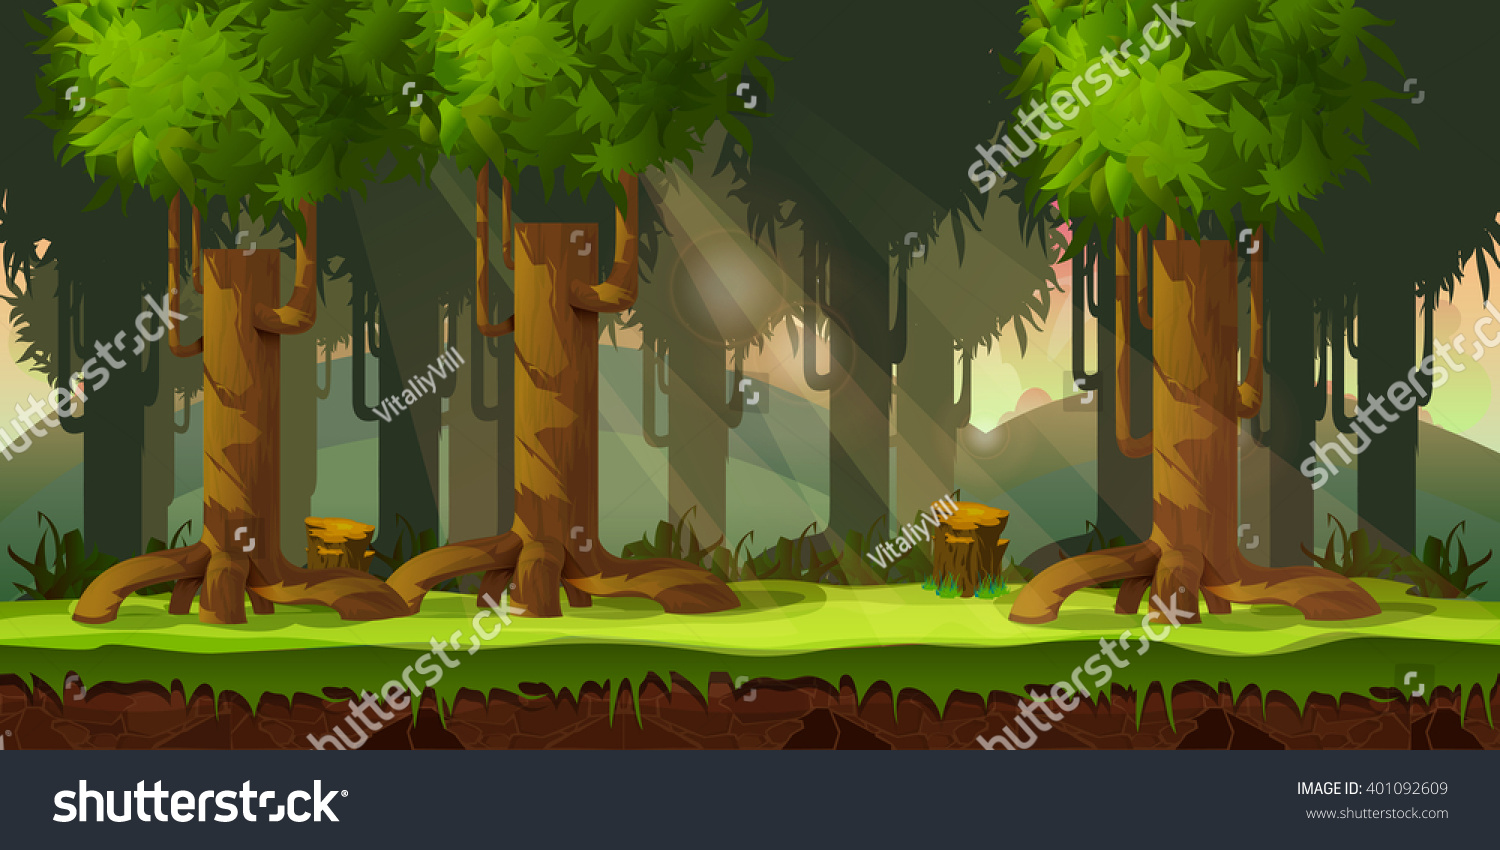 3d Wallpaper Parallax Free Forest Game Background 2d Game Application Stock Vector